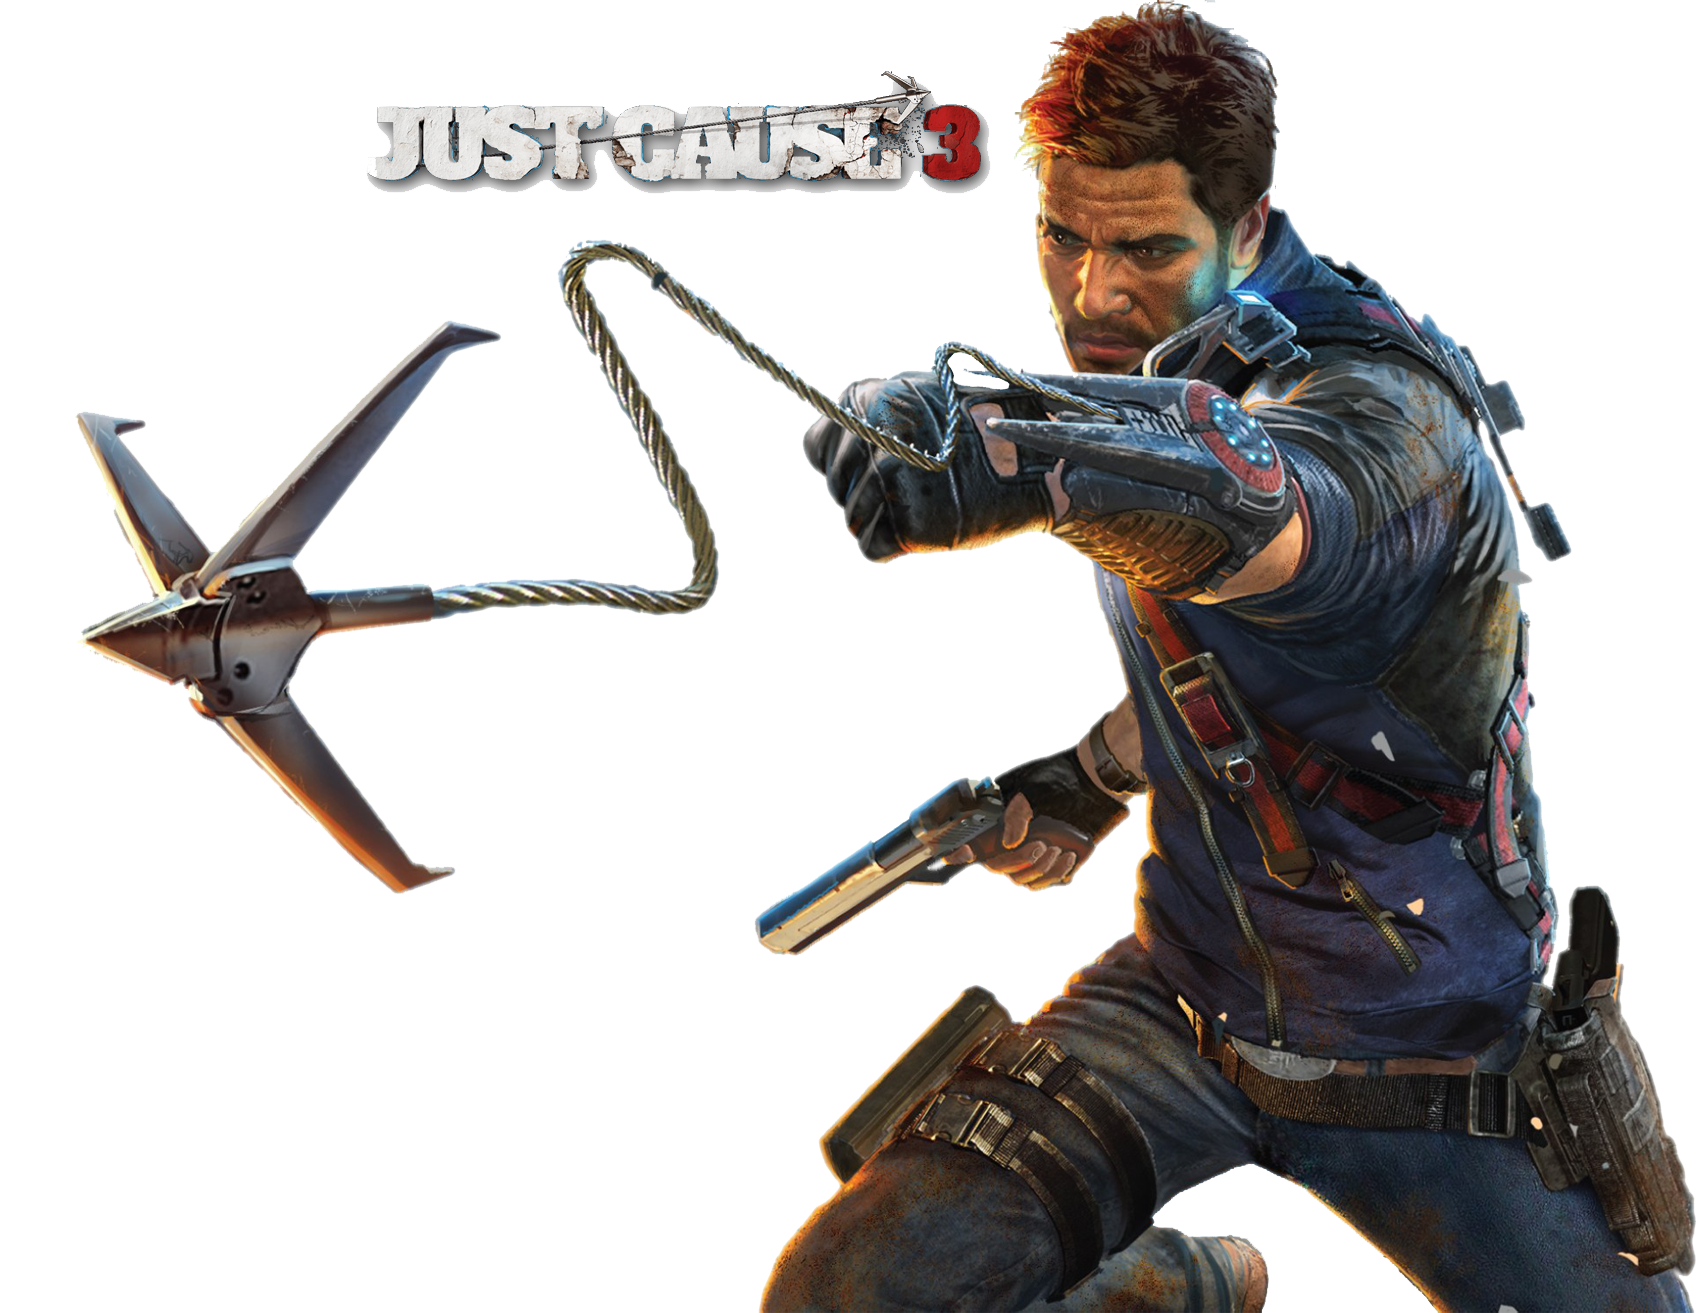 Just Cause Transparent PNG Image